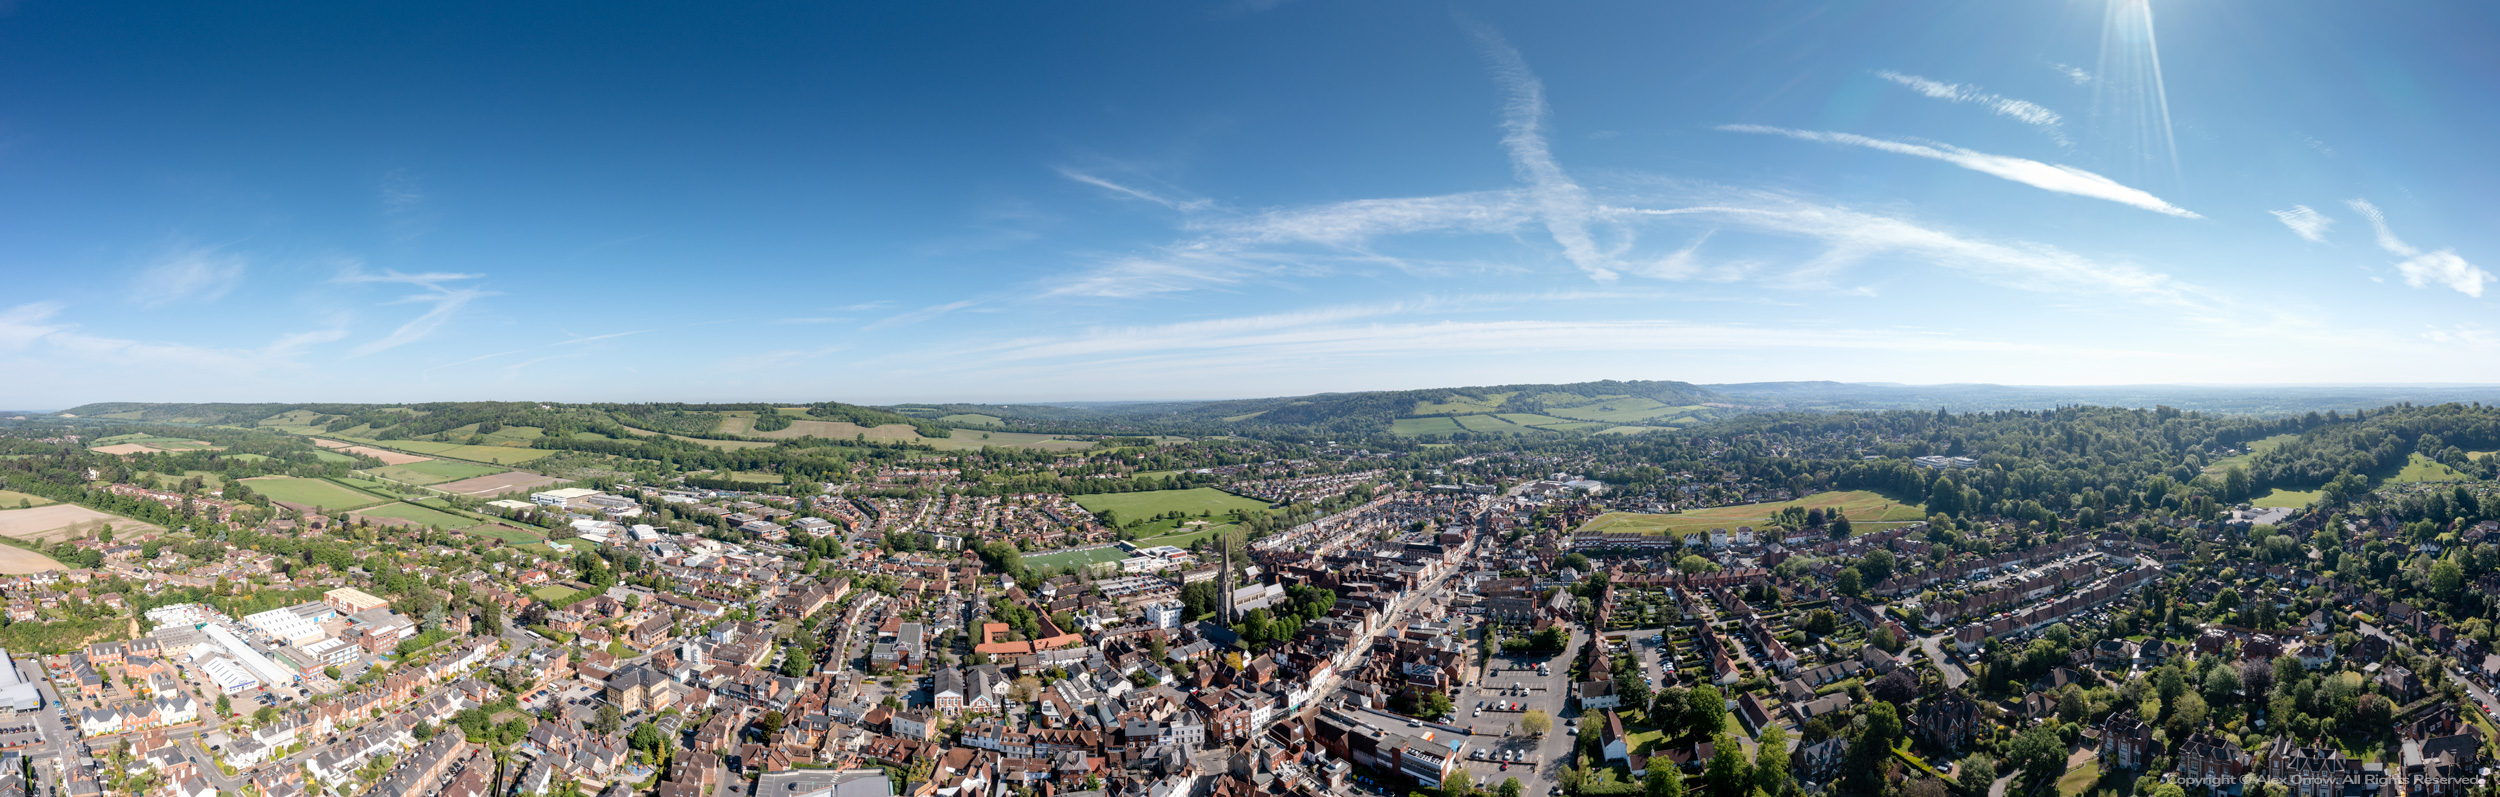 Dorking Town Centre